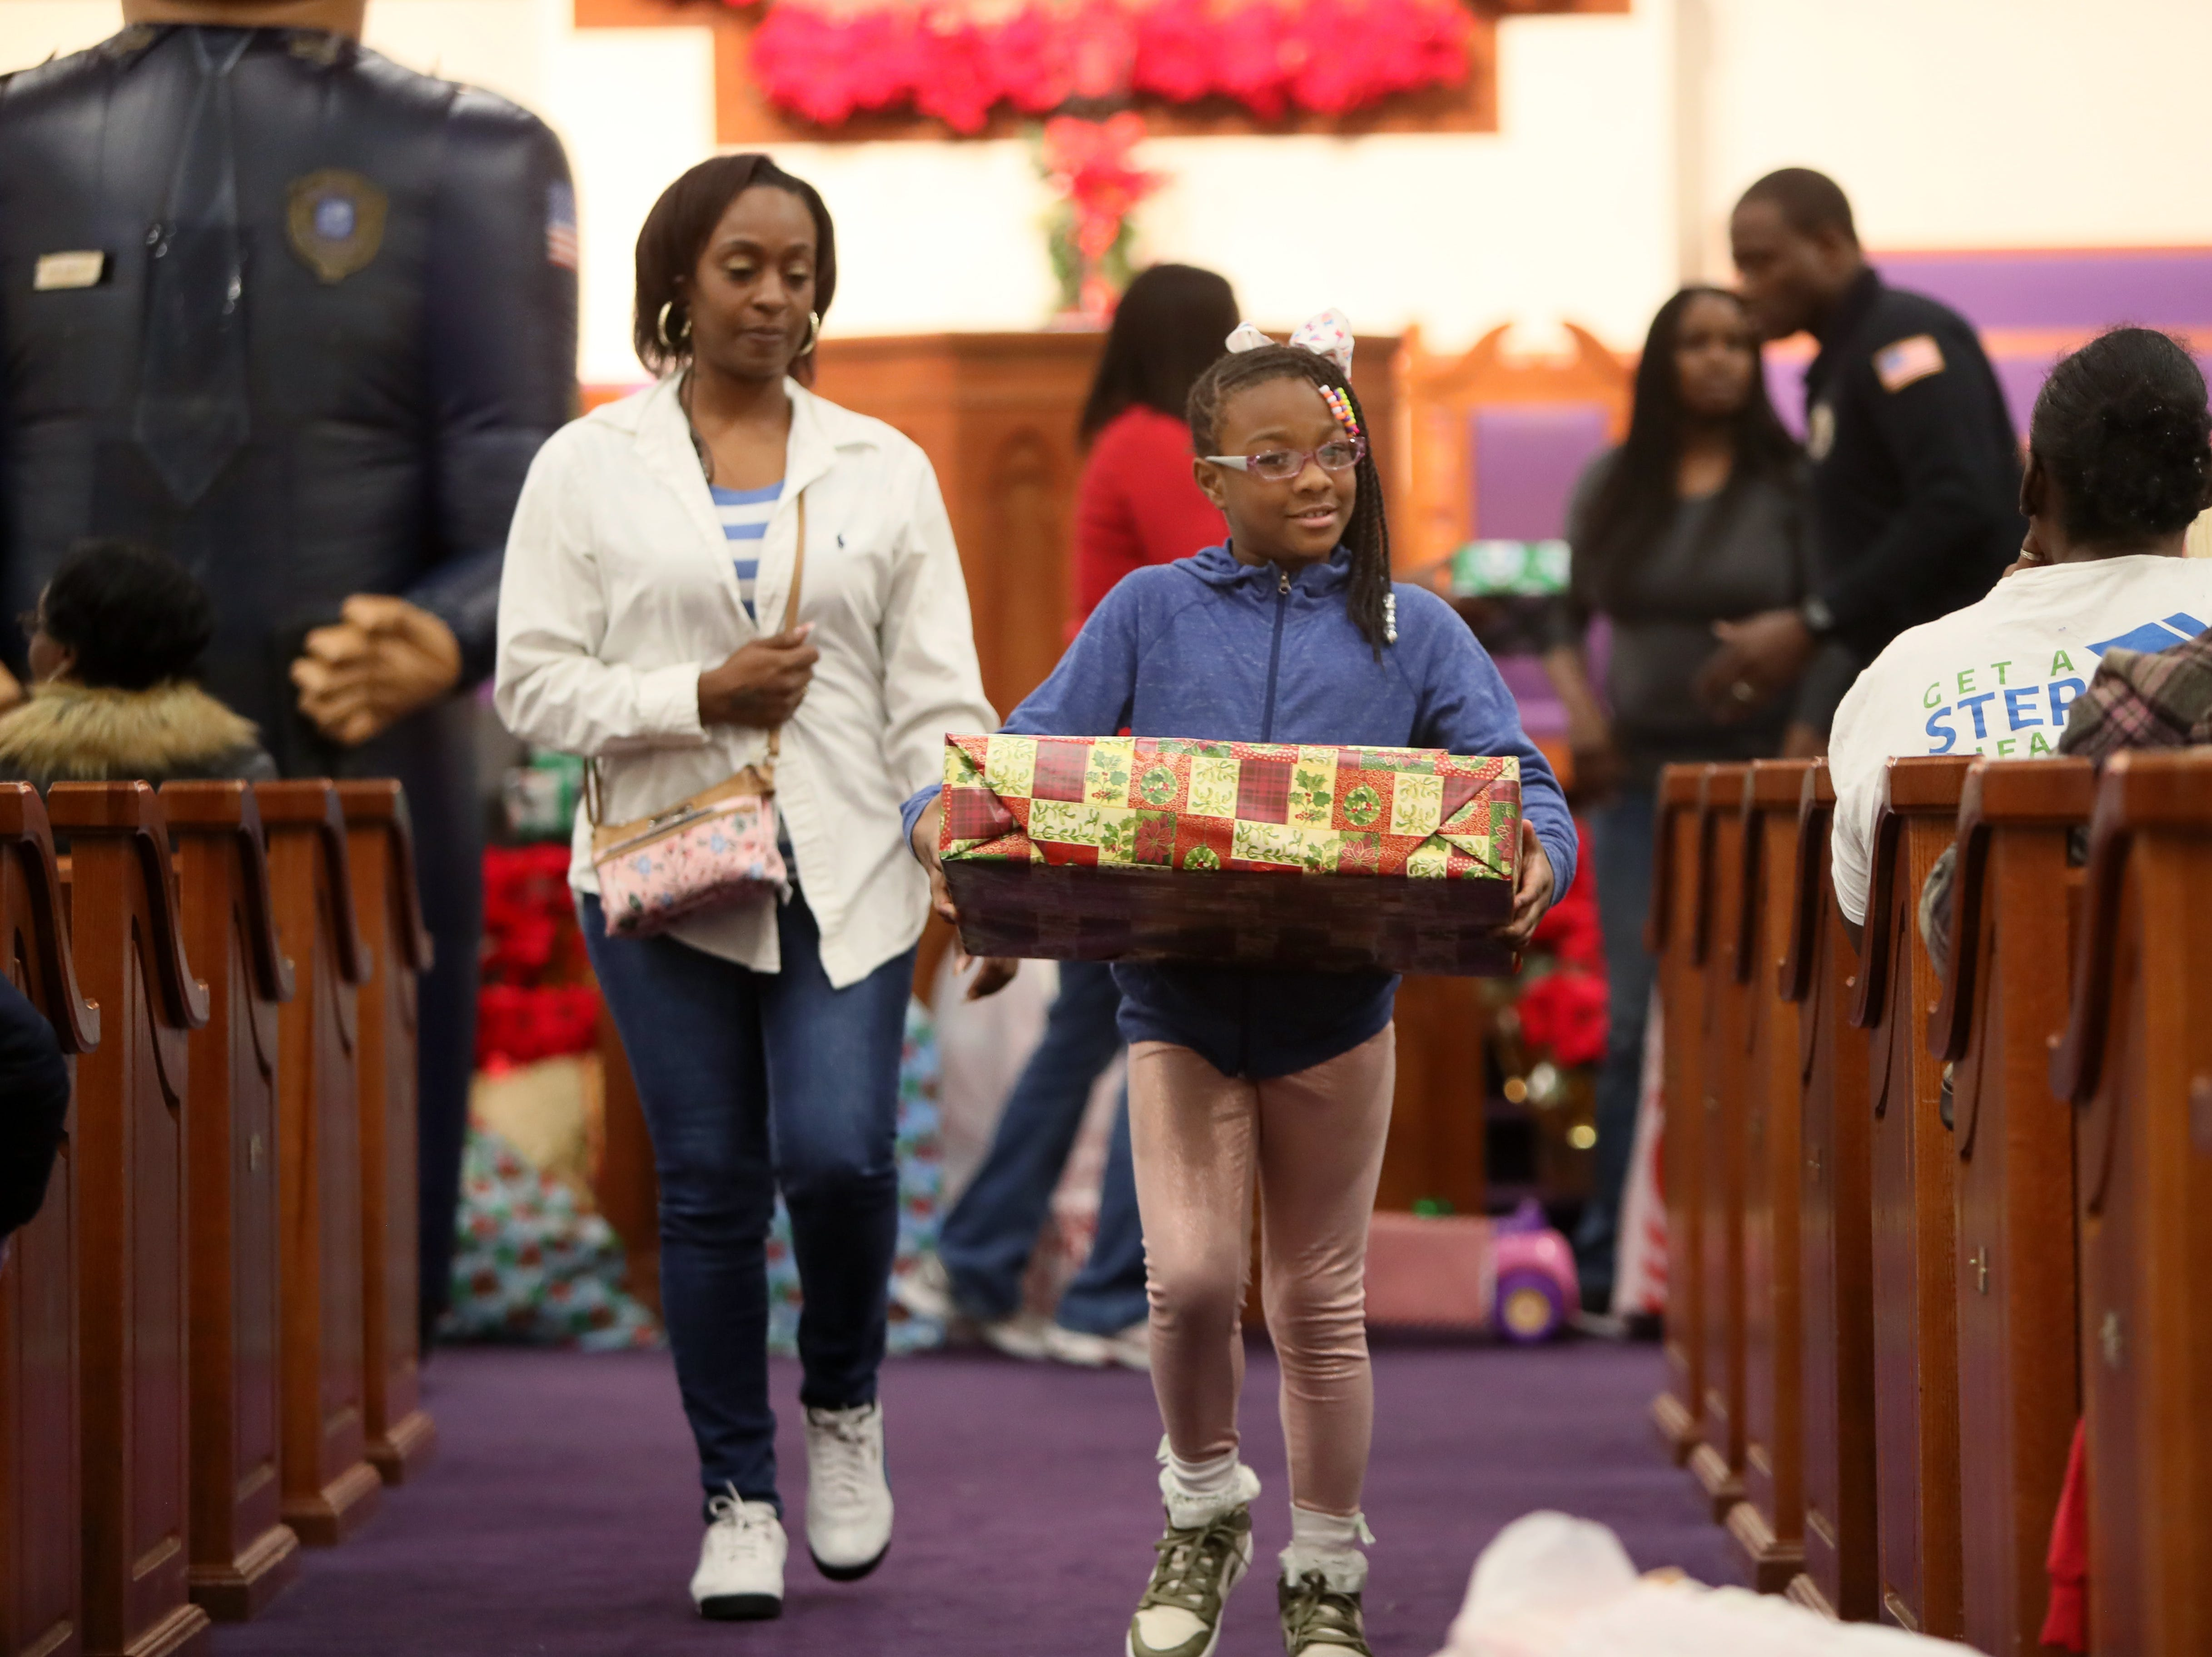 Tridinal Gillespie and her daughter Sandria, 8, receive a gift from MPD's Community Outreach Program as they serve holiday cheer with presents and food for families at Grace Missionary Baptist Church on Thursday, Dec. 20, 2018.